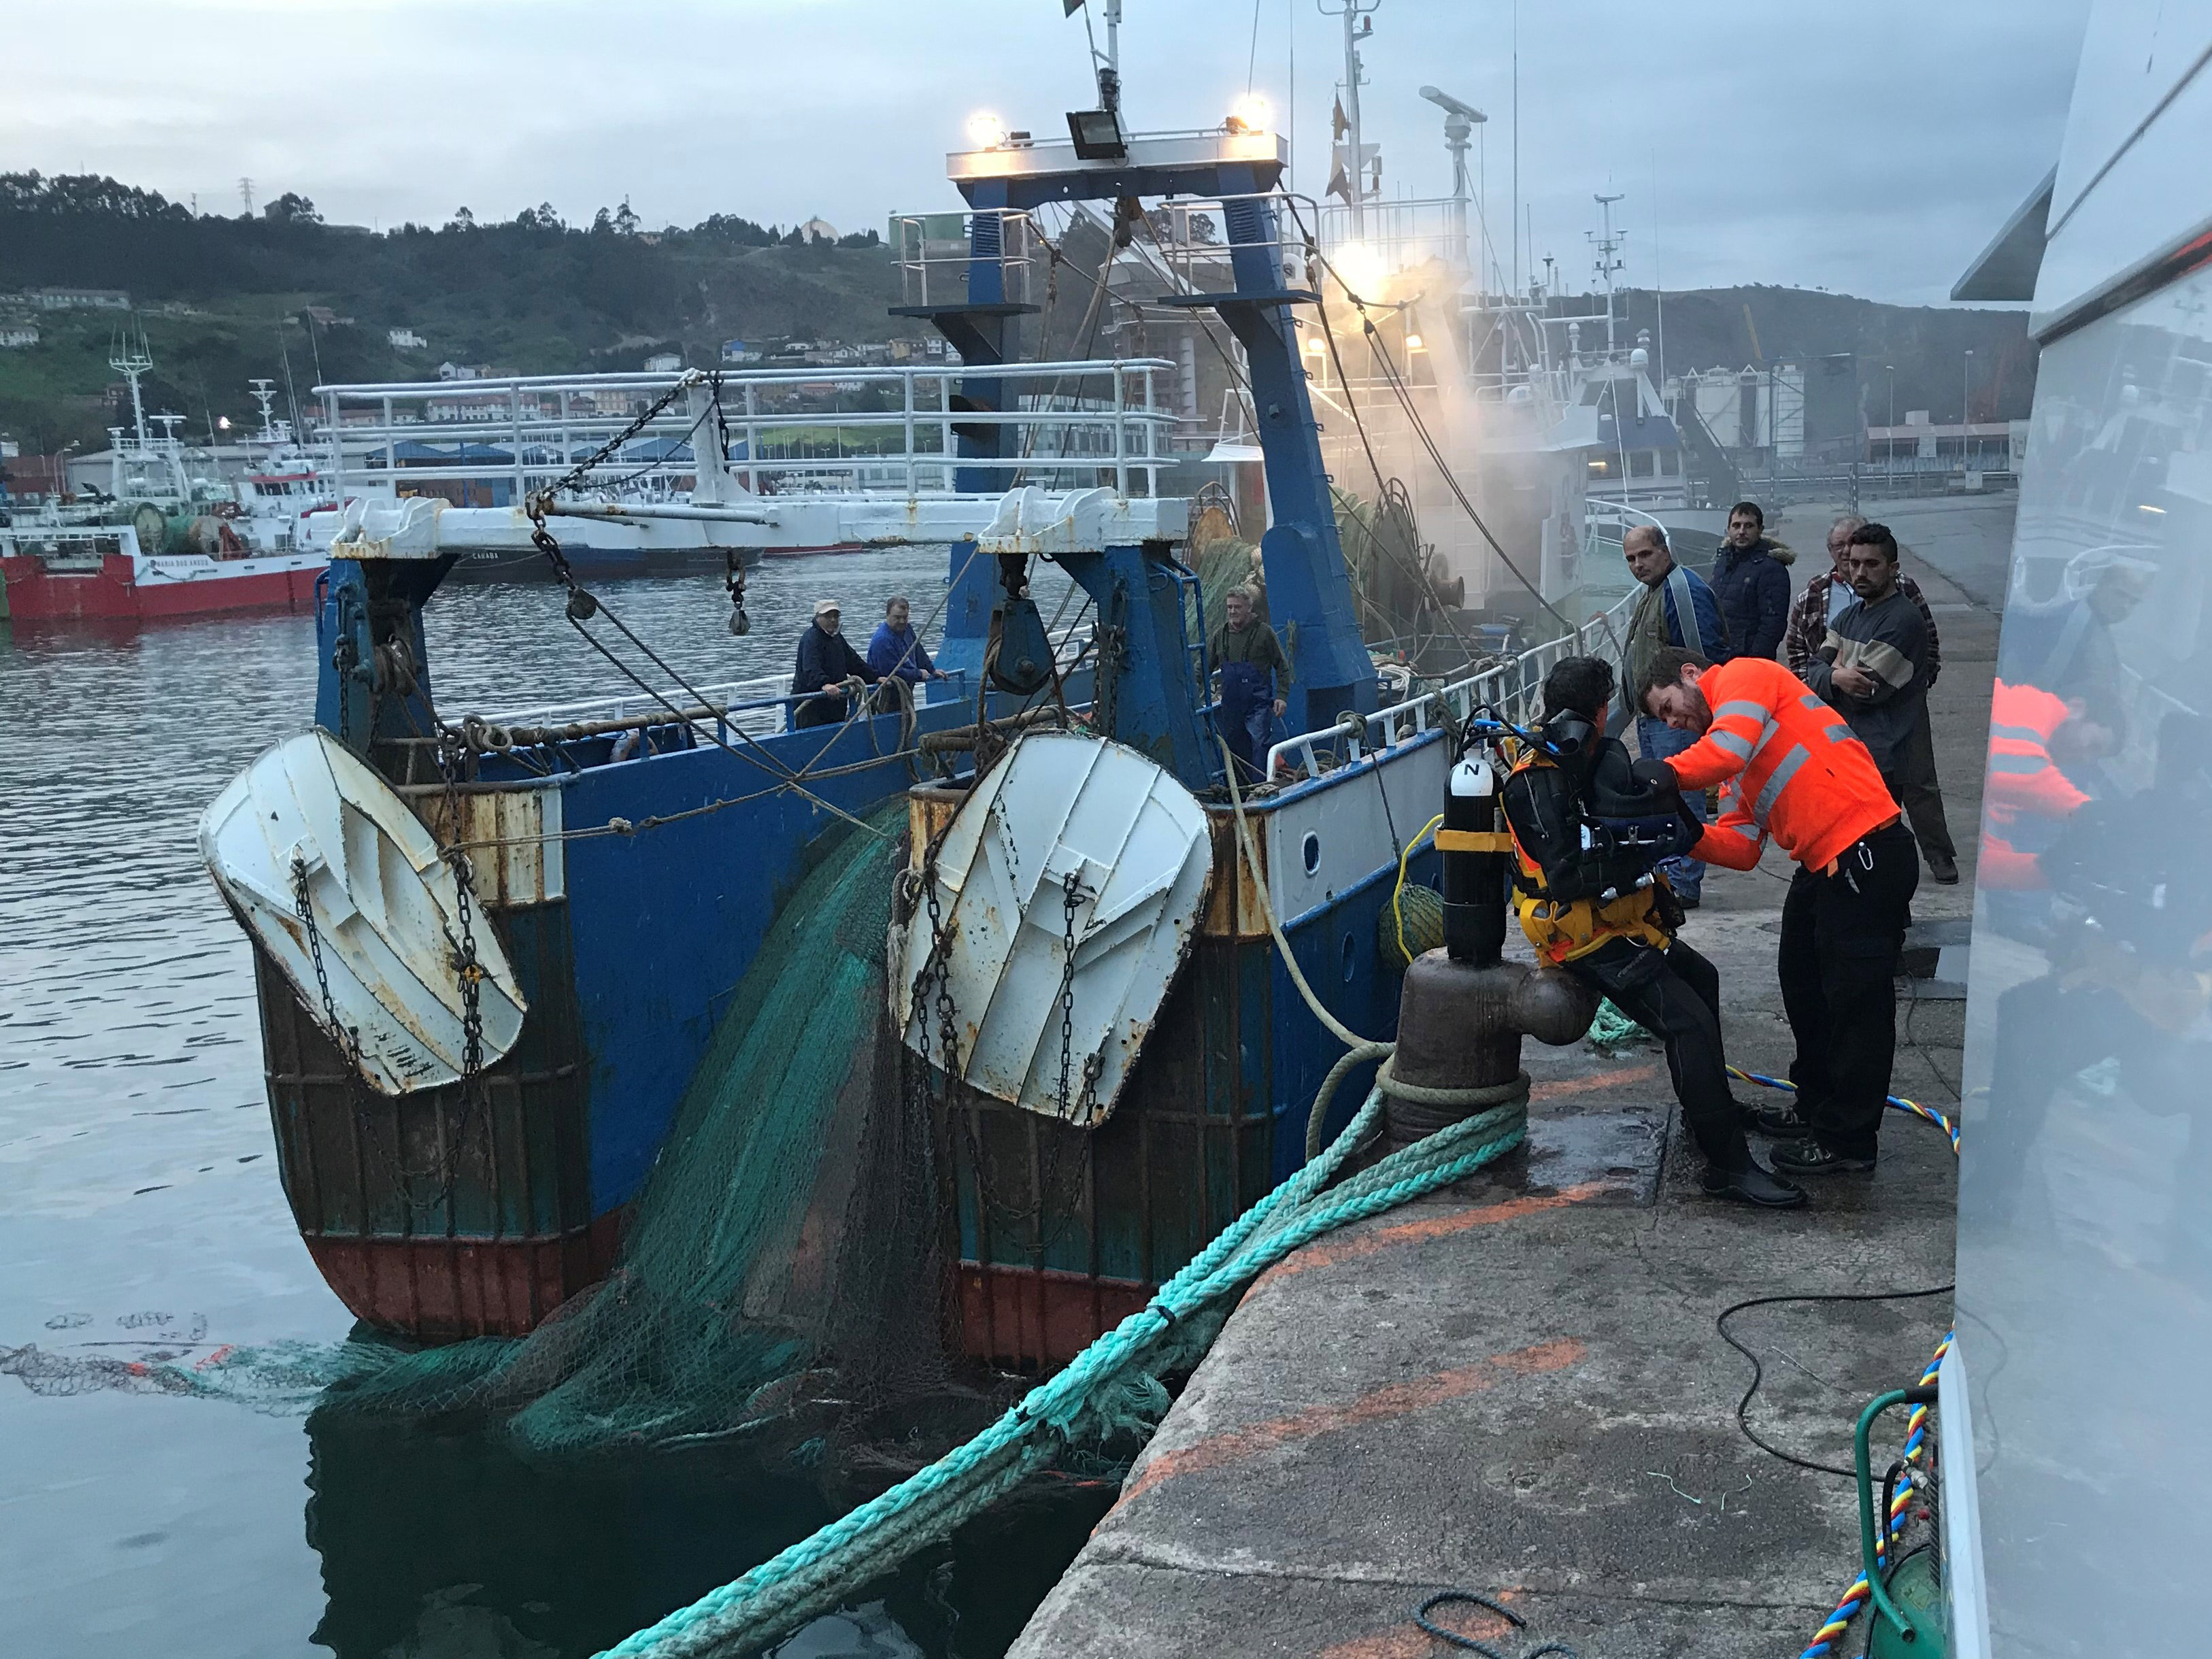 Removal of mooring ropes and nets entangled in trawler propellers